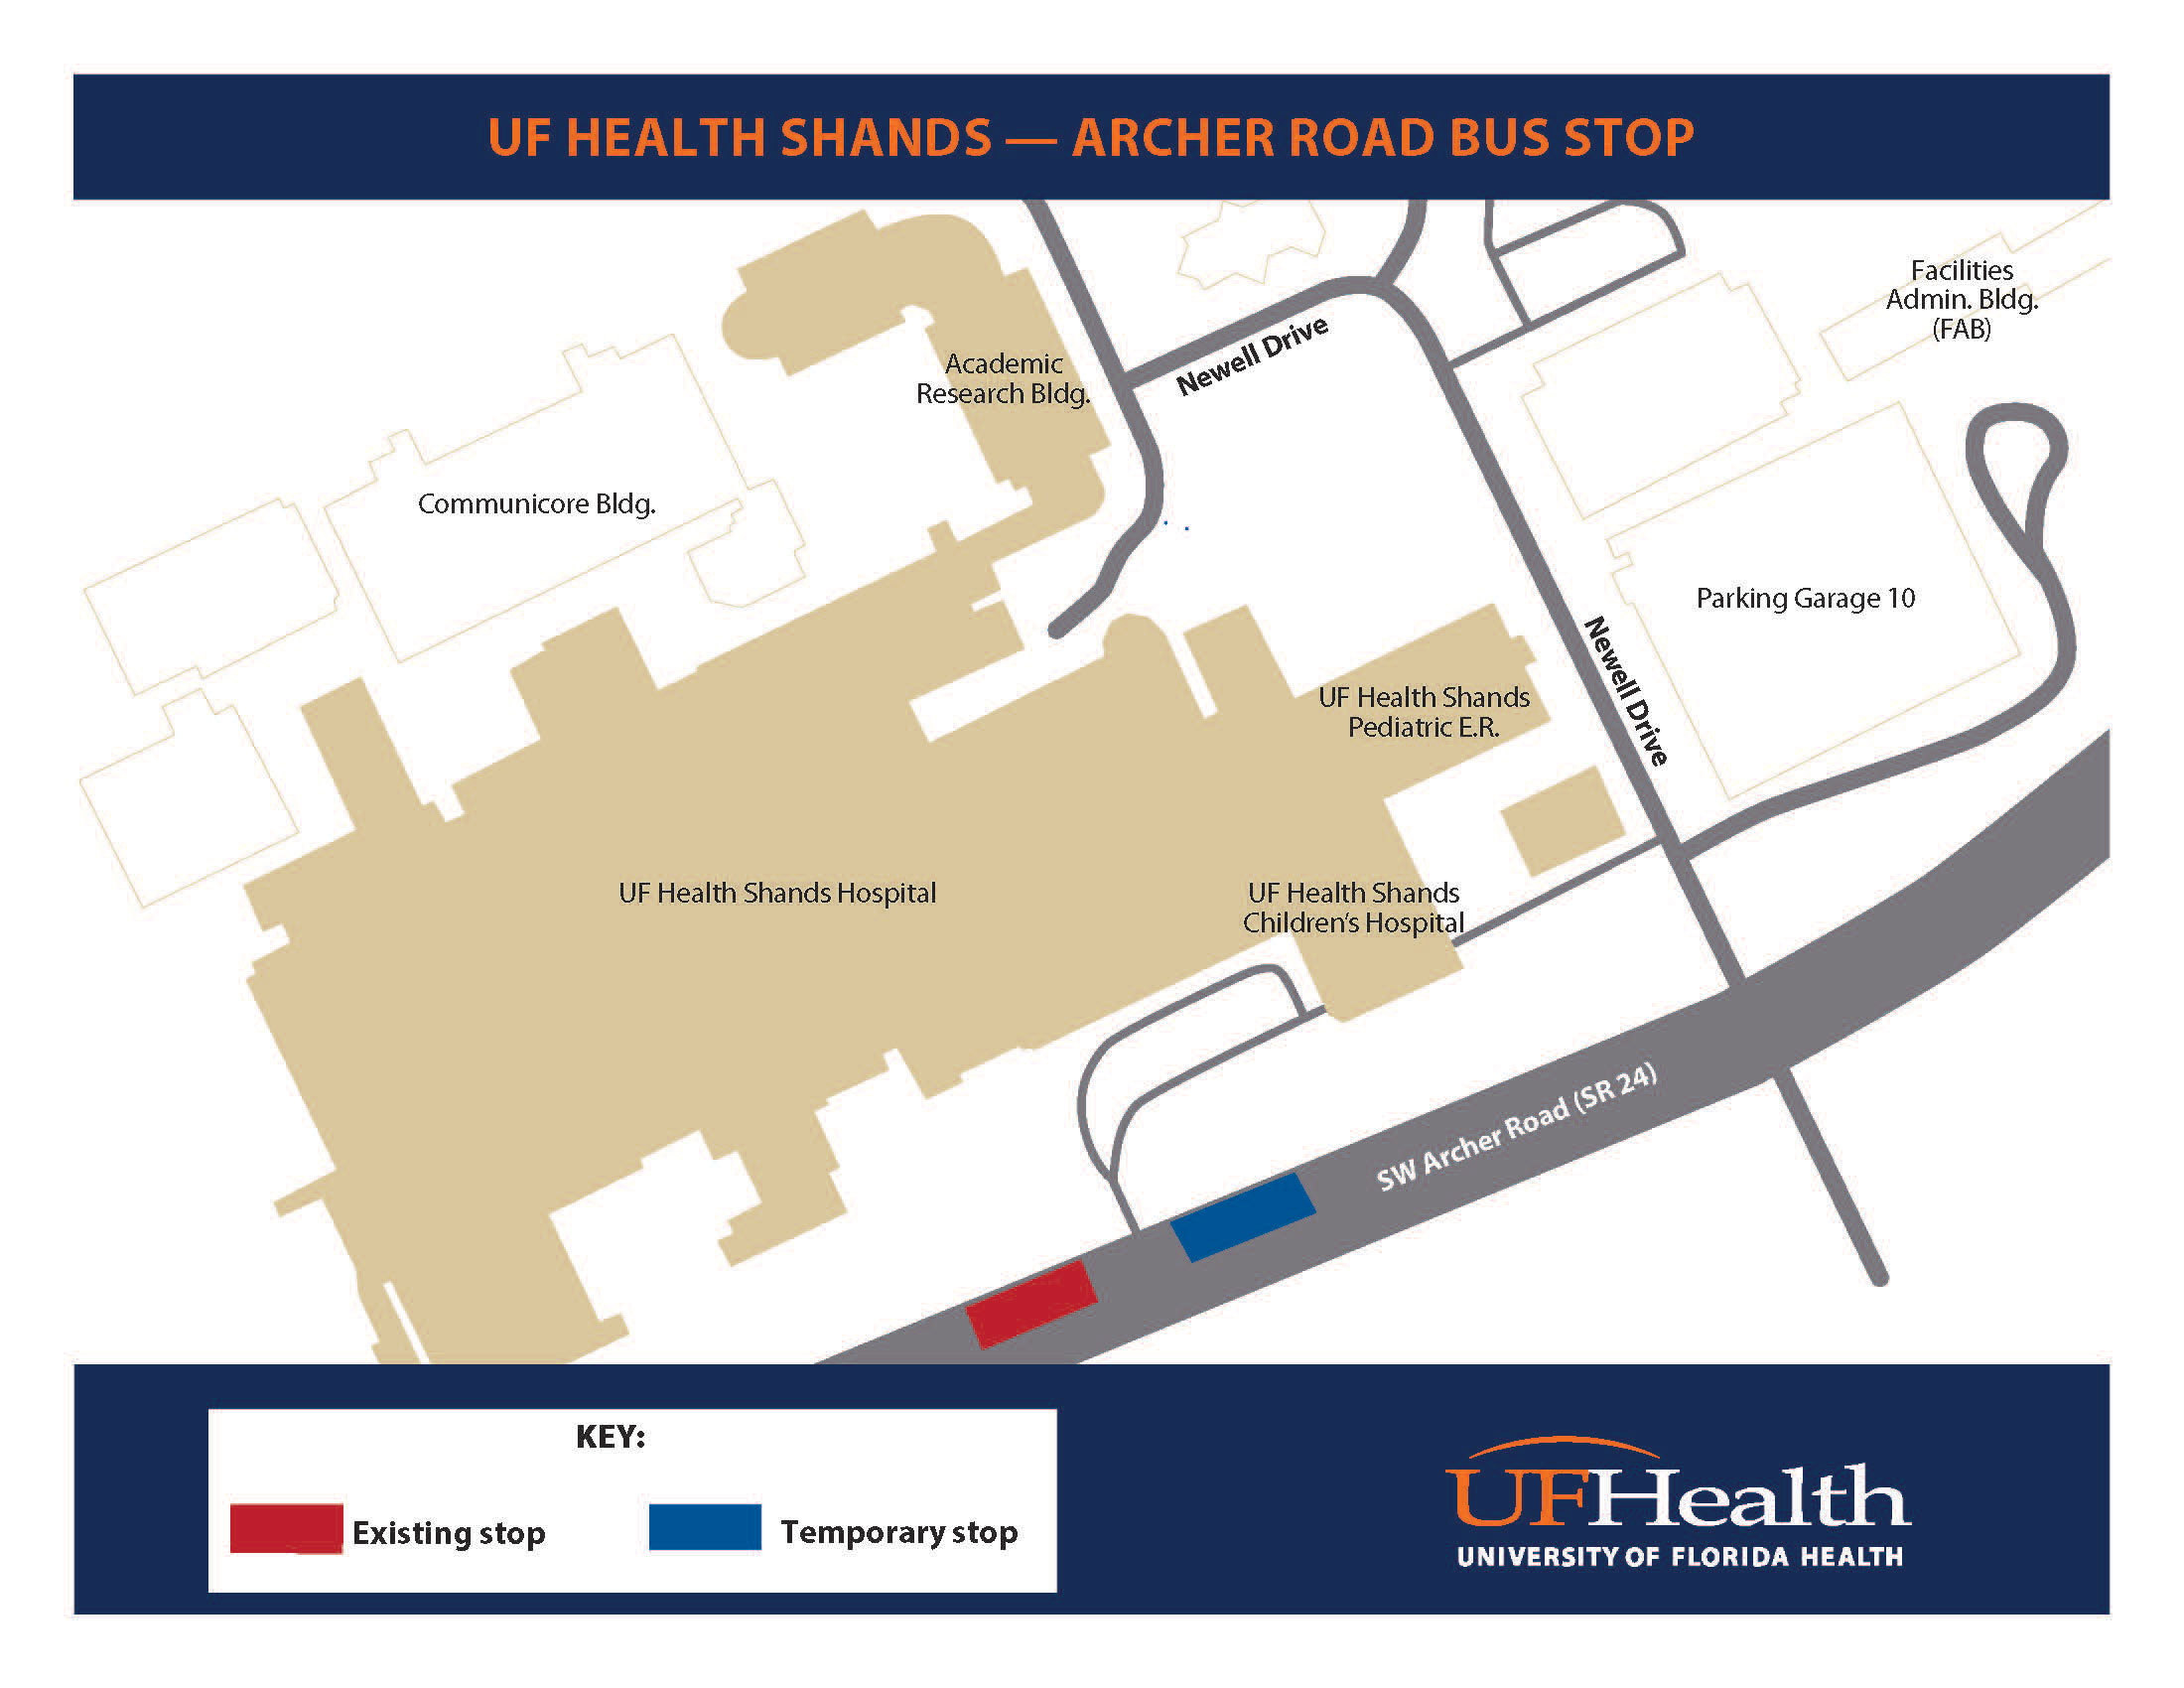 University Of Florida Location Map.Archer Road Bus Stop Temporary Relocation At Front Circle Now